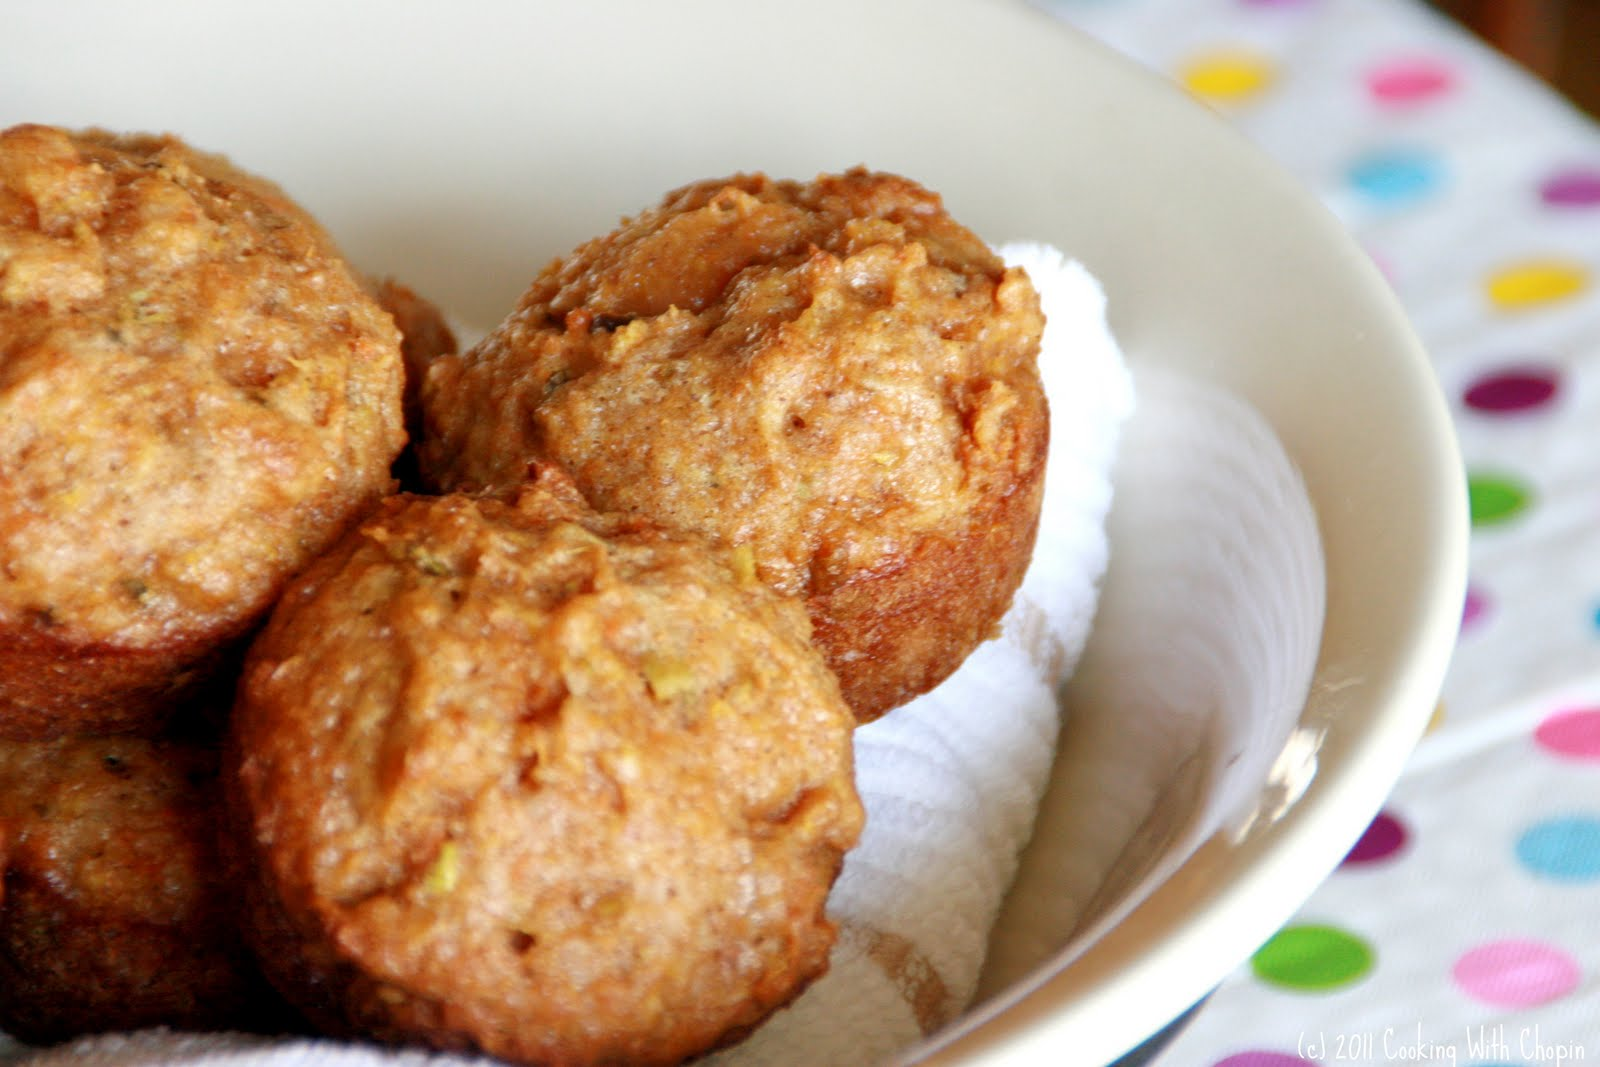 ... Chopin, Living with Elmo: Apple-Carrot Muffins (a.k.a. Juicer Muffins